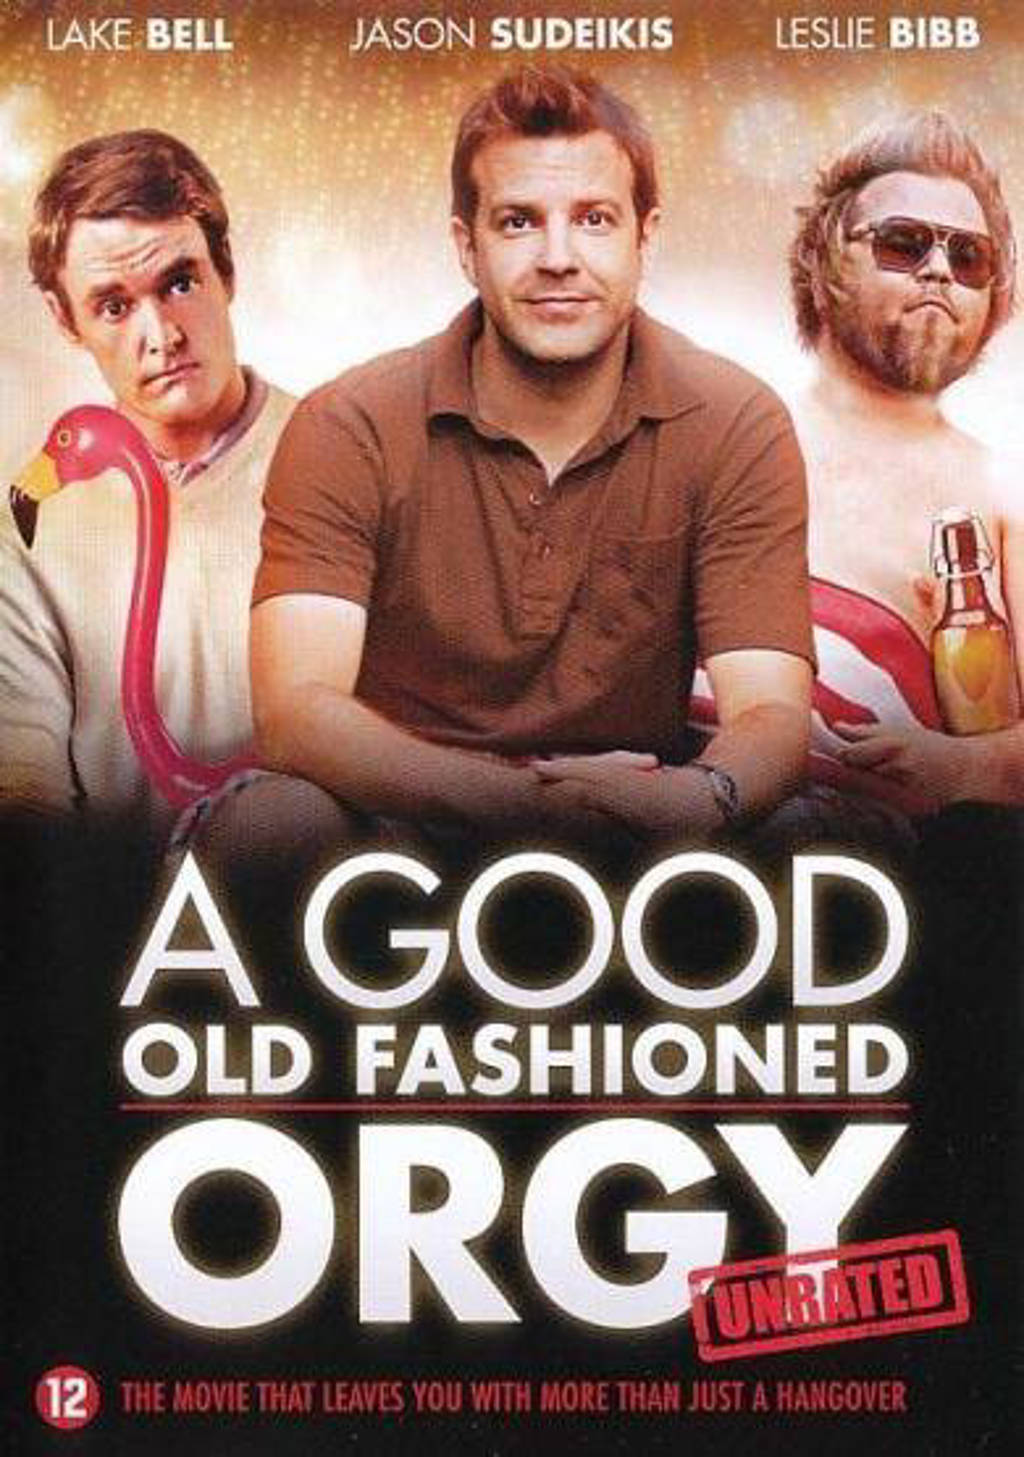 Good old fashioned orgy (DVD)